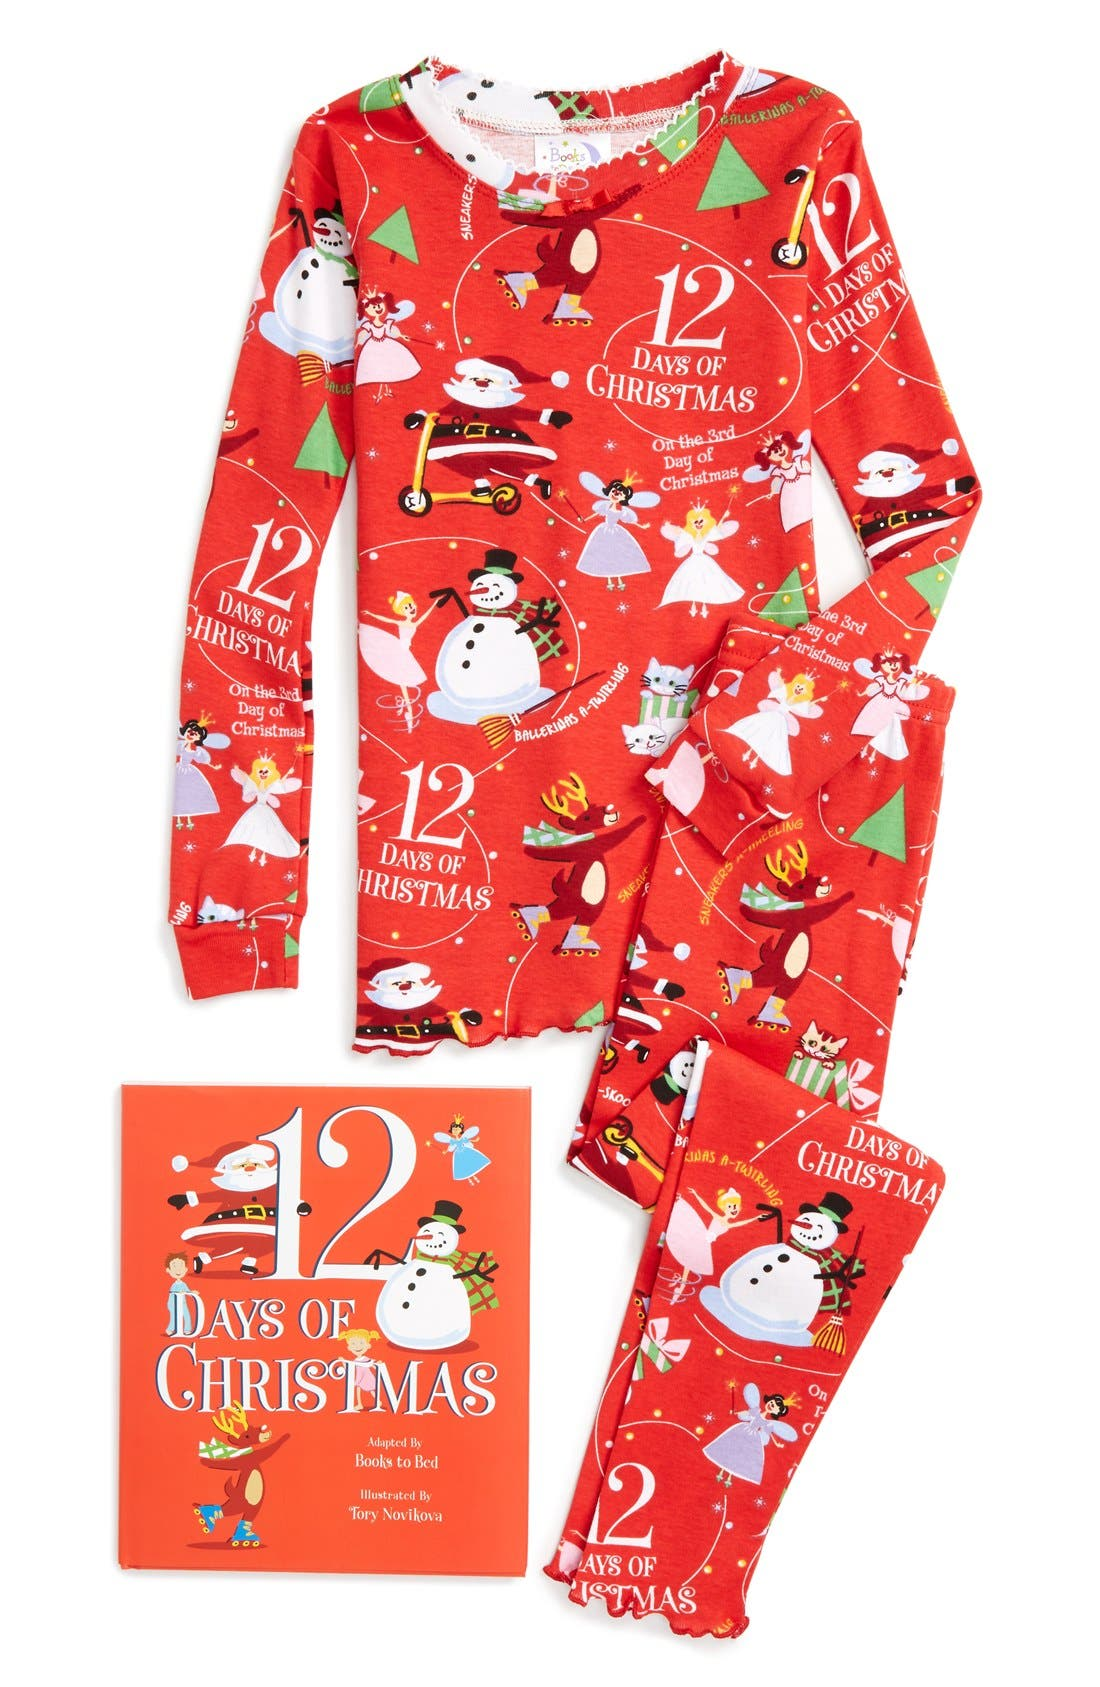 Main Image - Books to Bed 12 Days of Christmas Fitted Two-Piece Pajamas & Book Set (Toddler Girls, Little Girls & Big Girls)